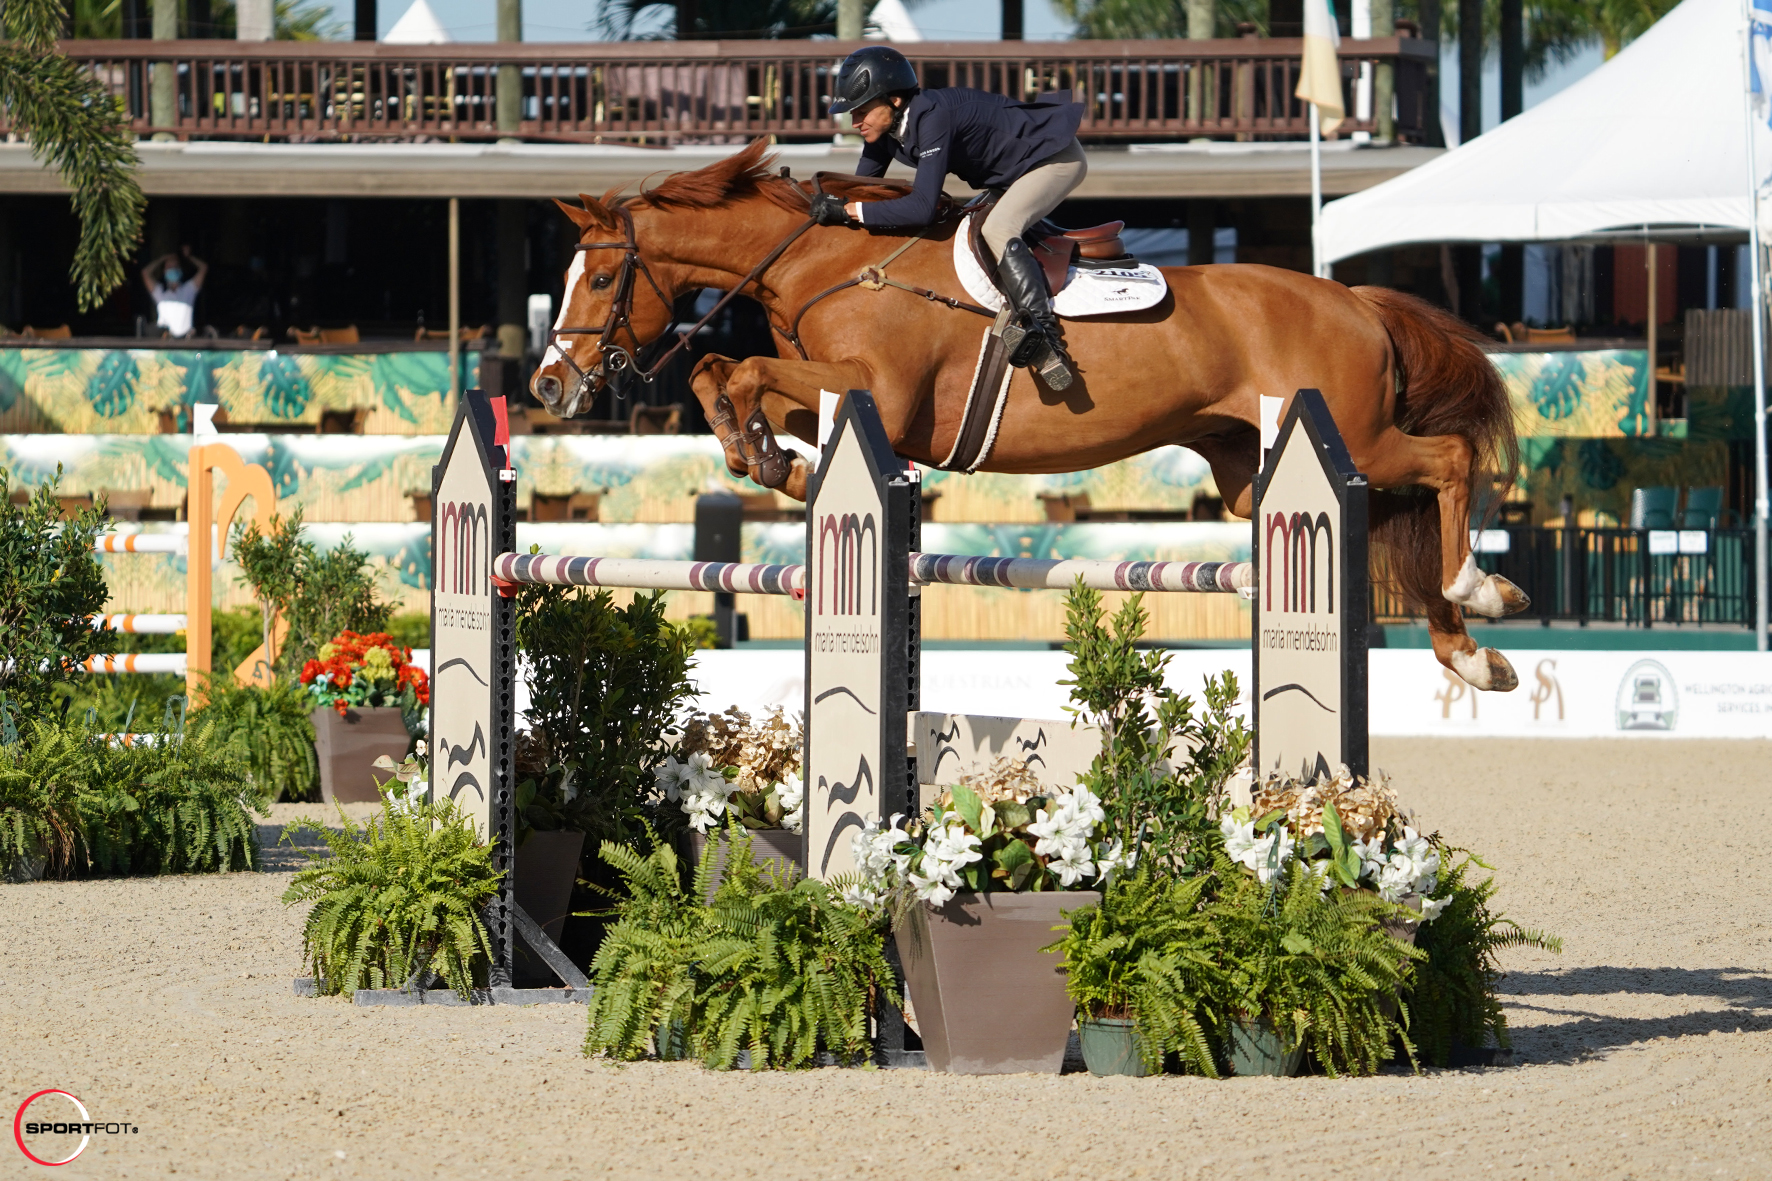 Laura Chapot and Calafornia Capture the Win in the $6,000 Bainbridge Companies 1.40m Jumpers